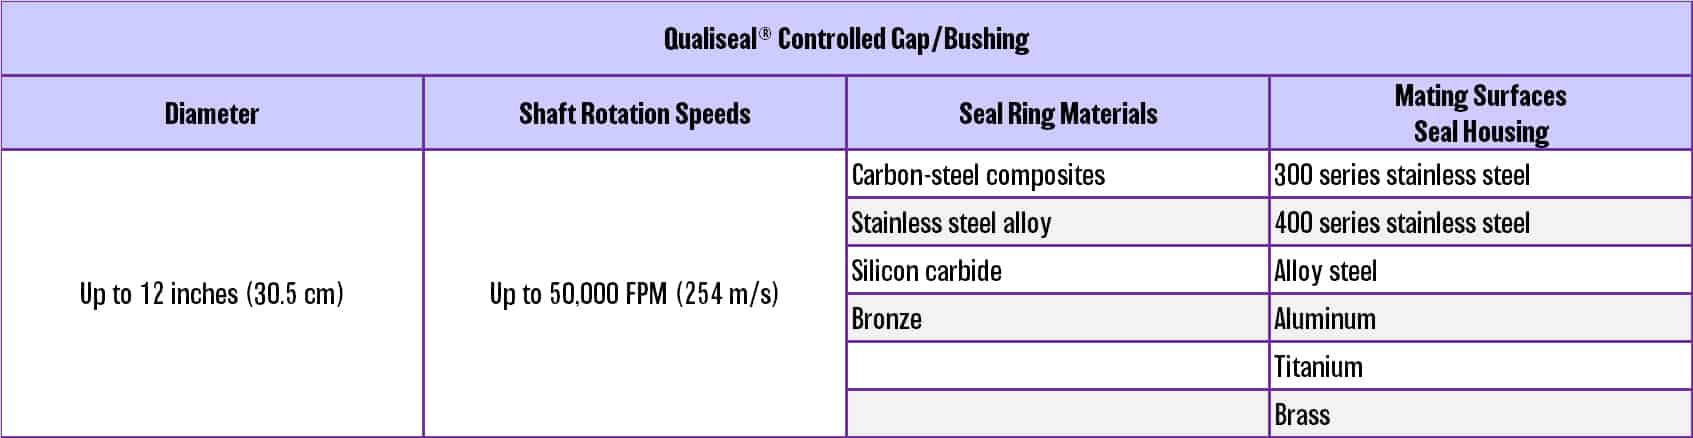 Qualiseal® Controlled Gap/Bushing Specifications